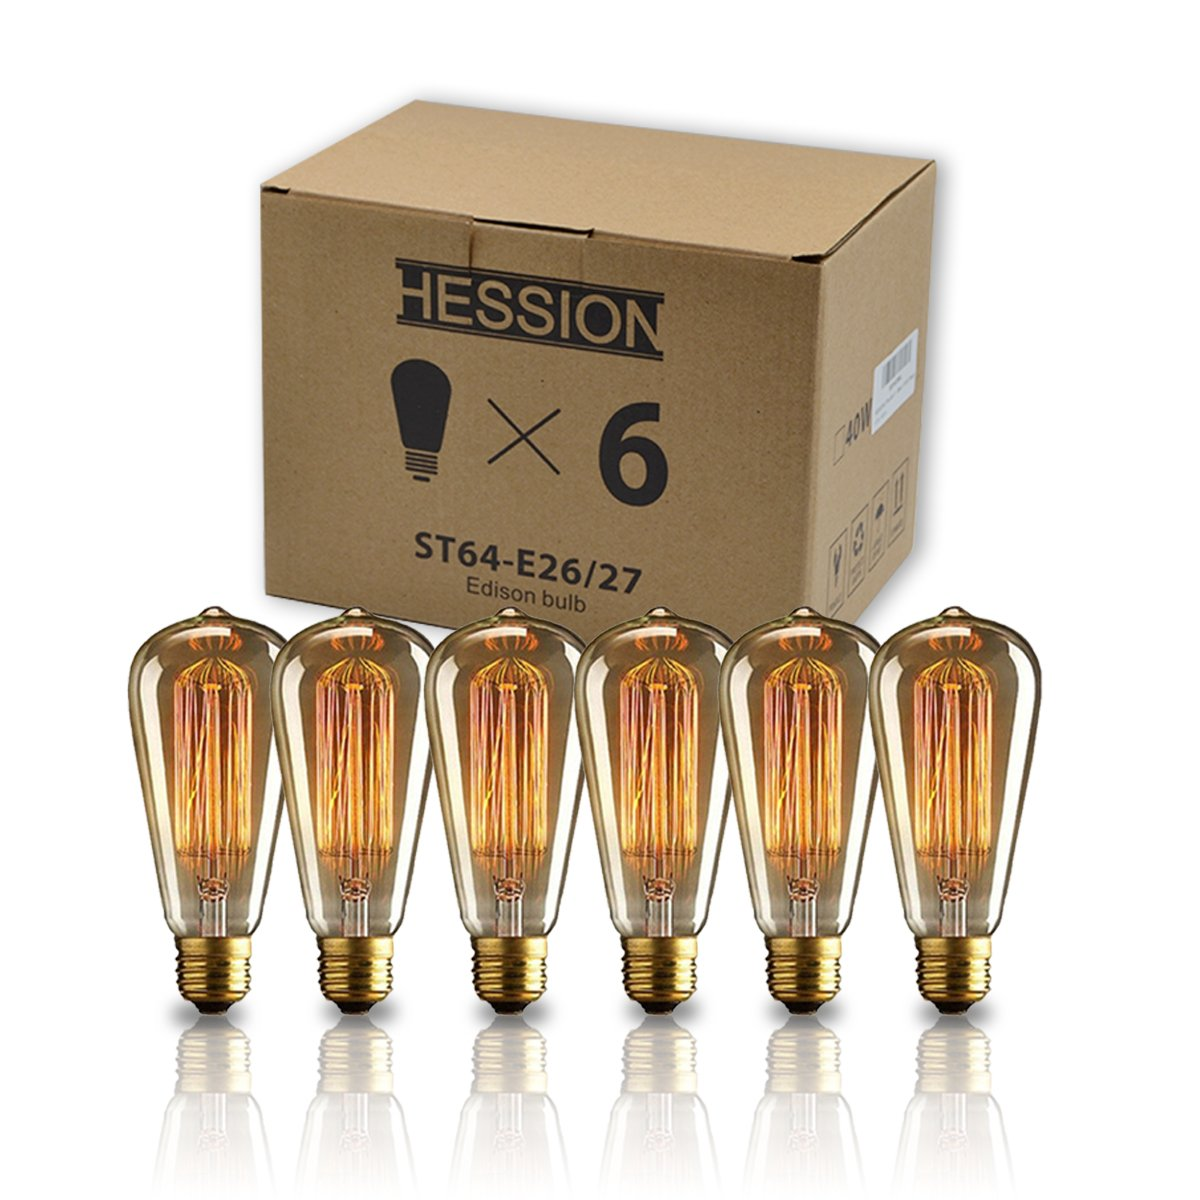 HESSION ST64 40w Vintage Edison Light Bulb Dimmable Antique Tungsten Filament Incandescent Bulbs Squirrel Cage Style E26 Base for Decorative Pendant Lighting Glass 110V Amber Color(6 Pack)